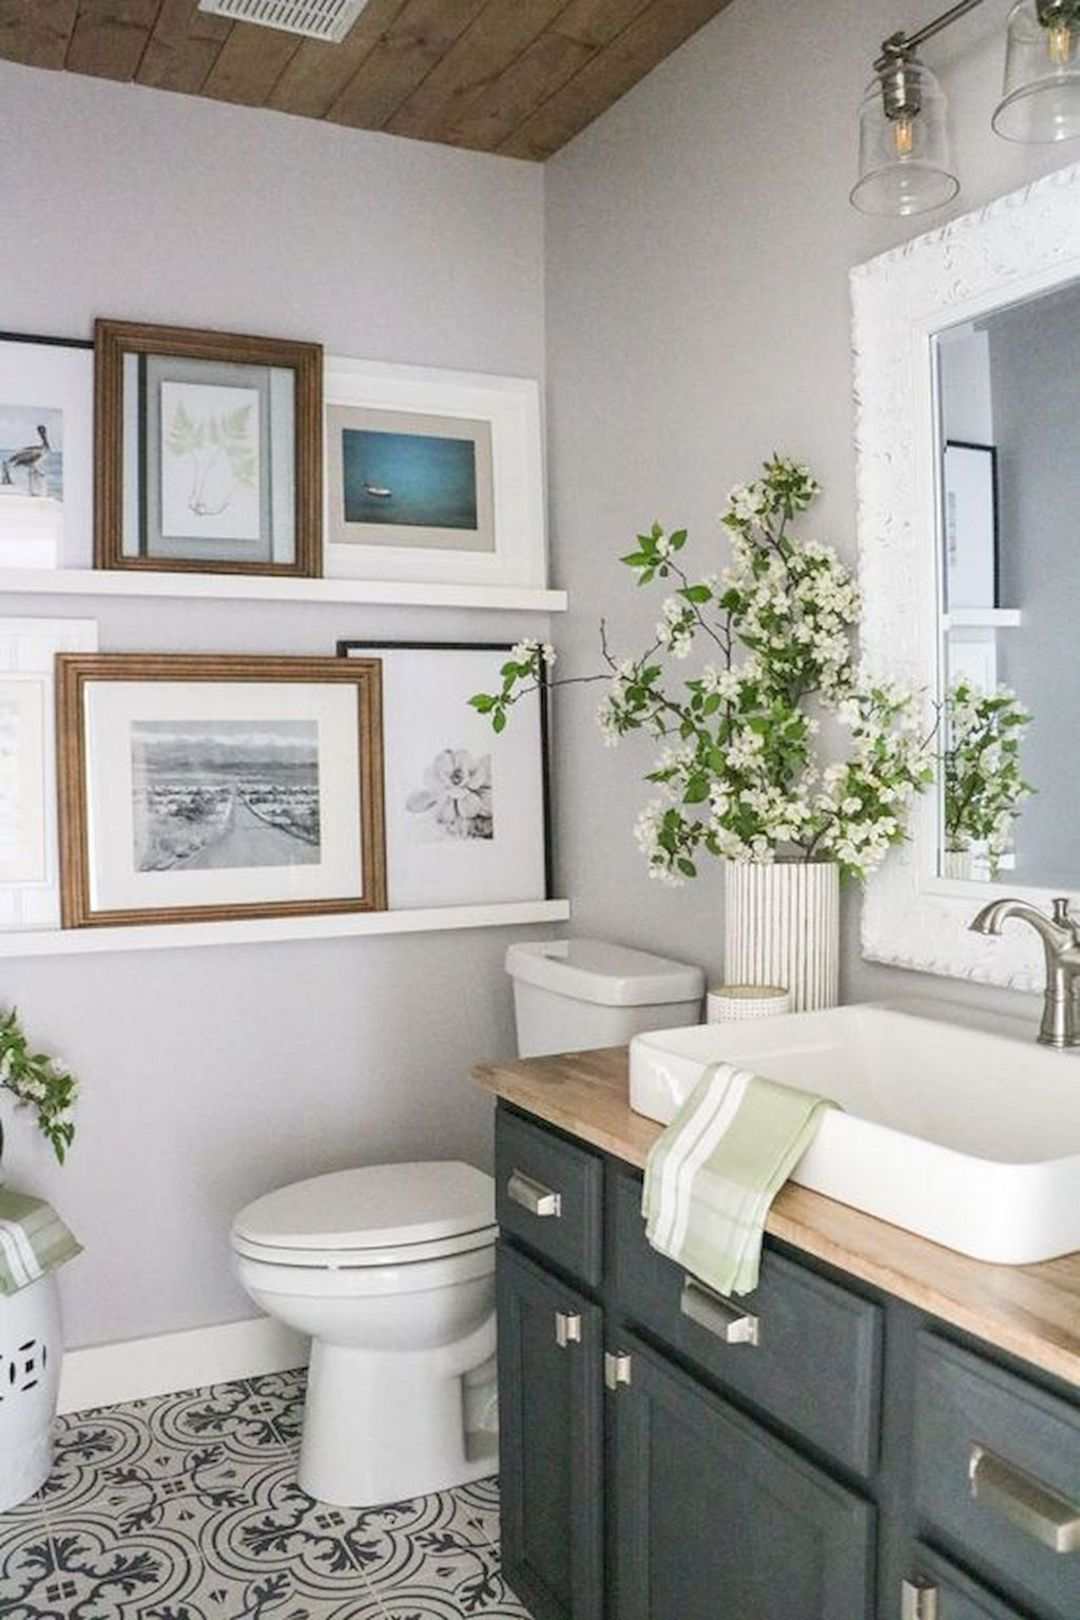 Kleines Bad Dunkle Fliesen 115 Extraordinary Small Bathroom Designs For Small Space Room